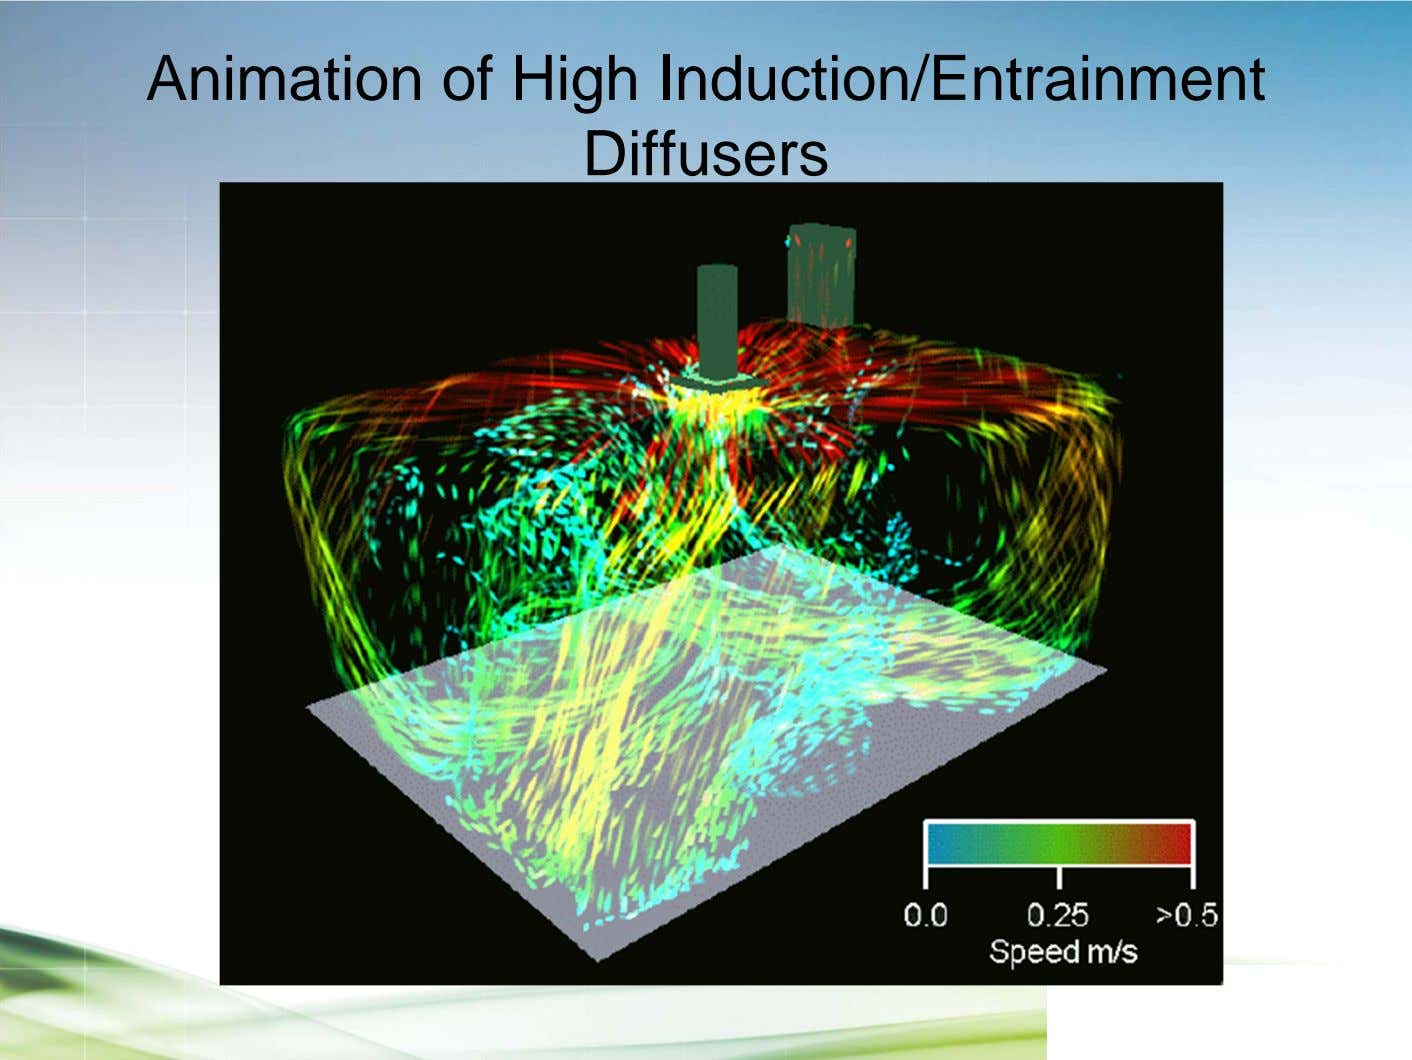 Animation of High Induction/Entrainment Diffusers